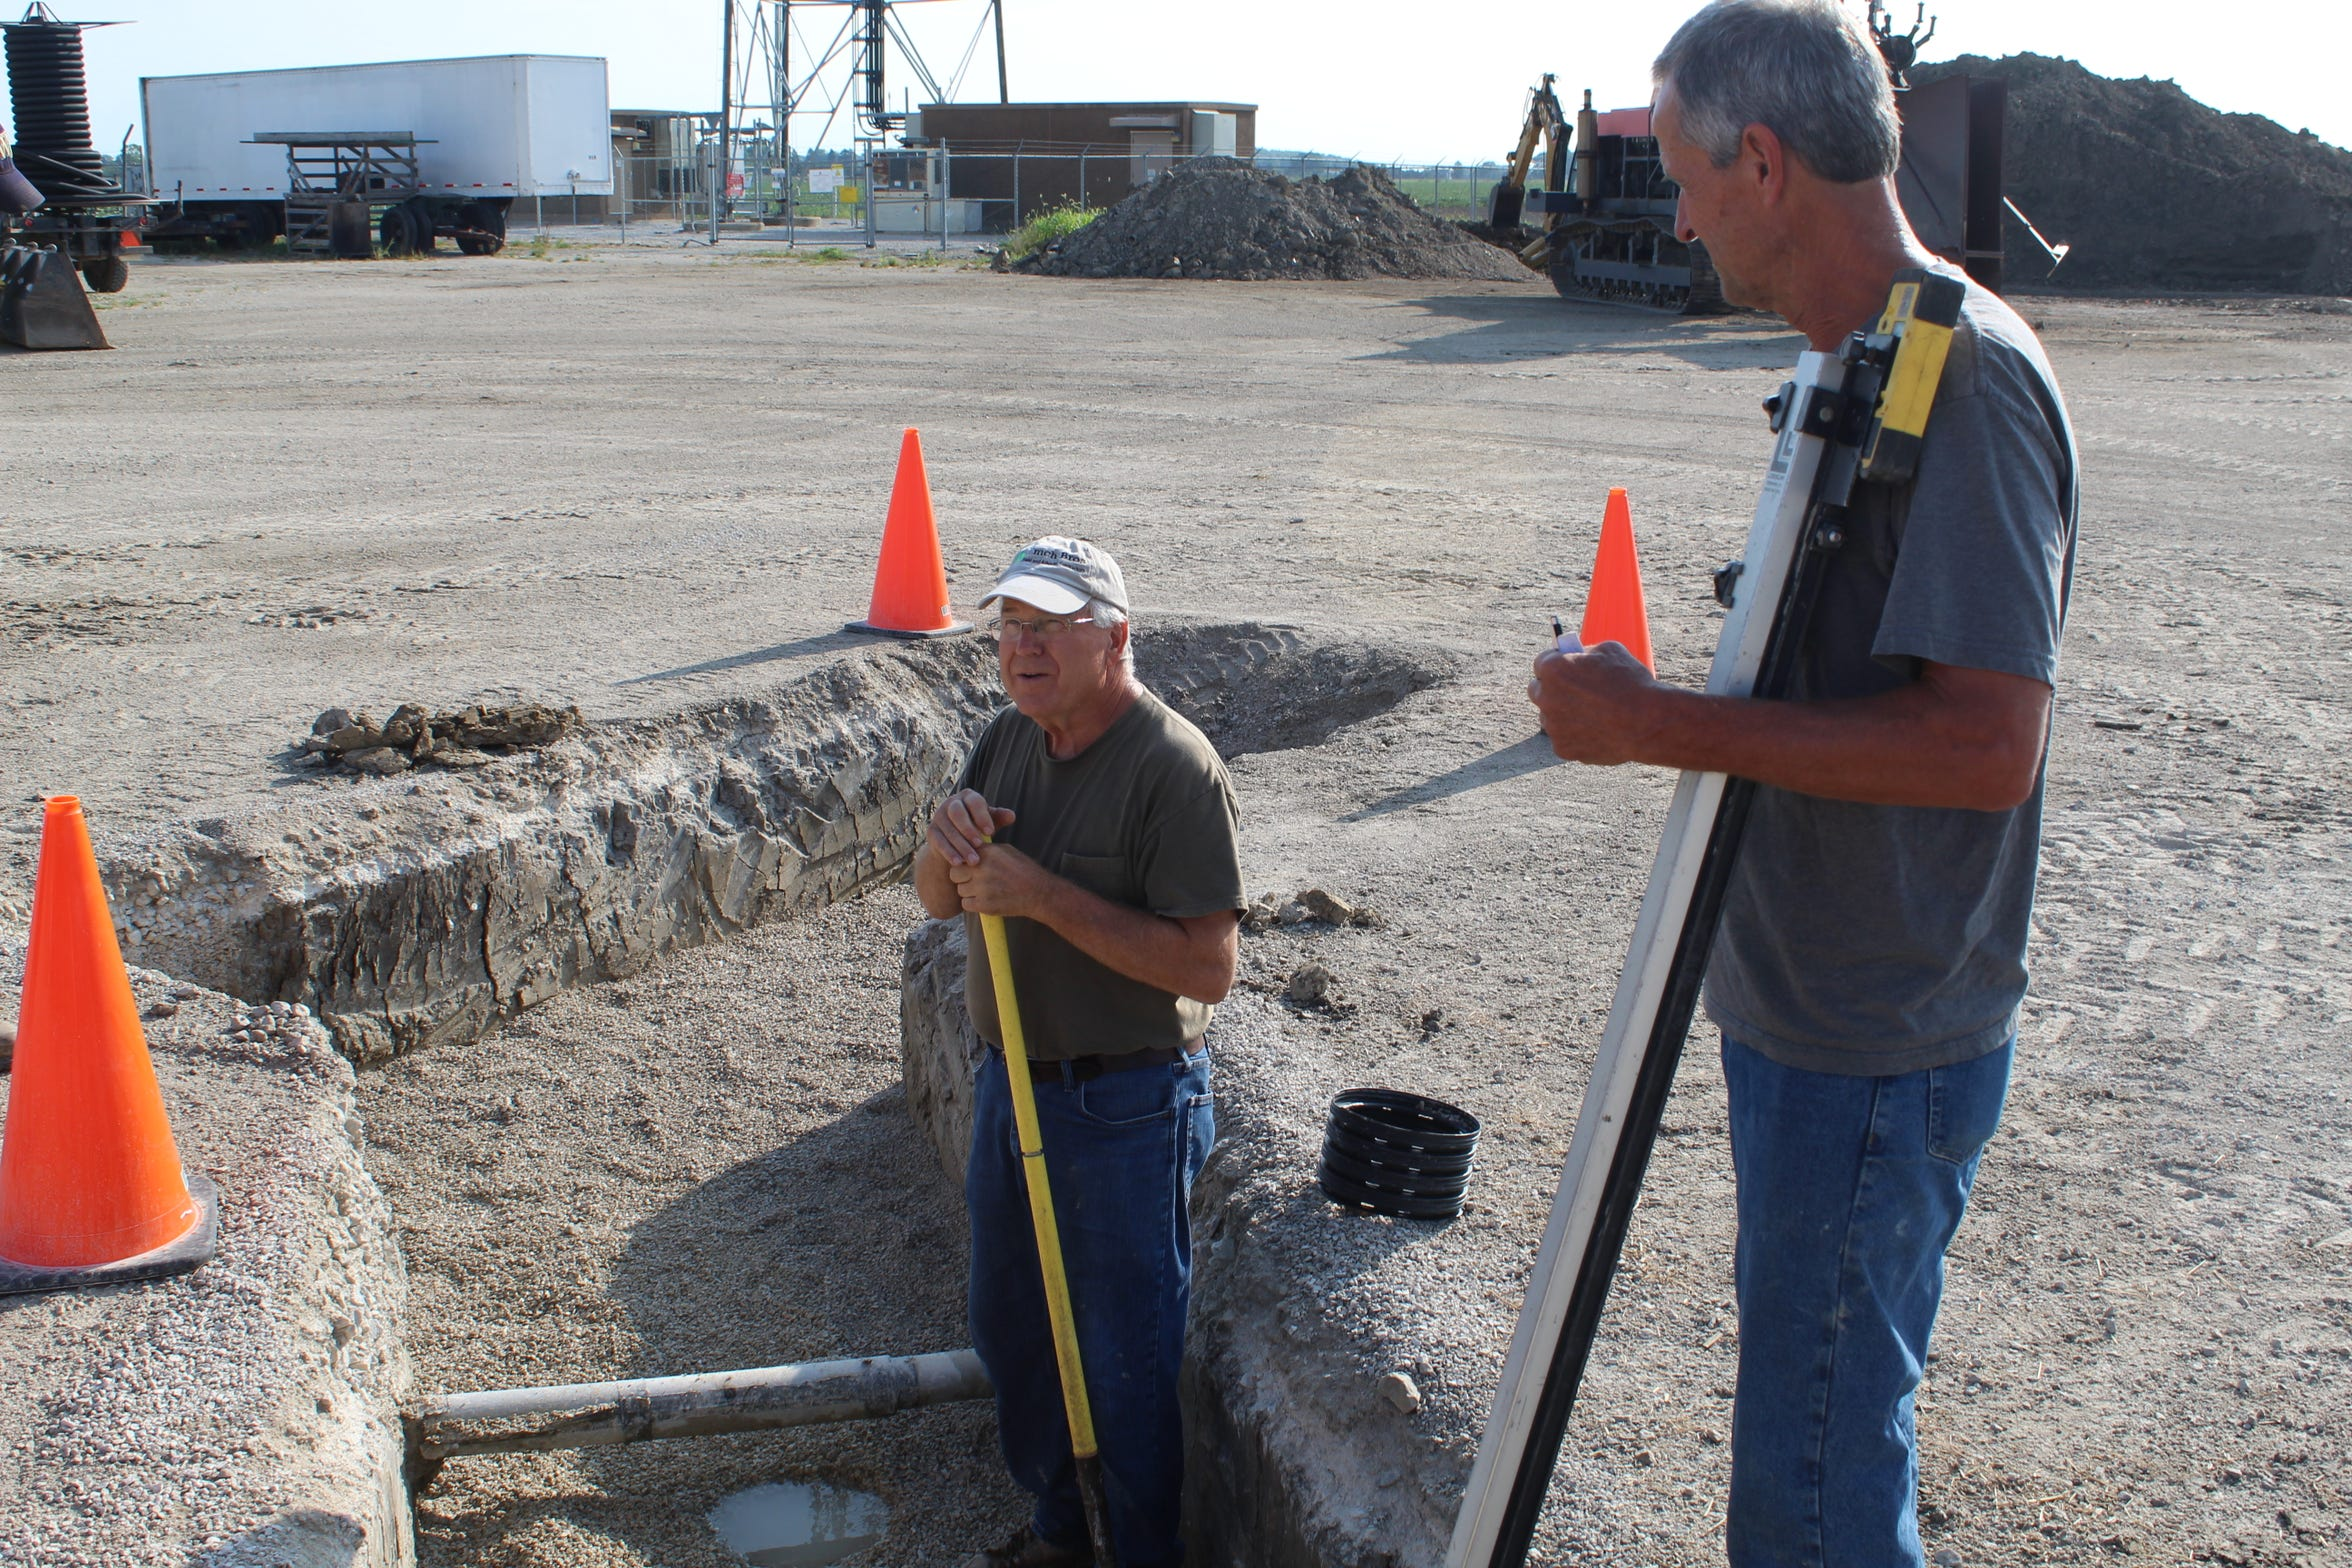 John and Bill Emch, Woodville-based drainage contractors for Emch Bros. Inc., were at Chad Gargas' Genoa farm in mid-August digging a trench for new drainage tile. The Emches have been in business 45 years, but haven't seen a farming season as bad as 2019.